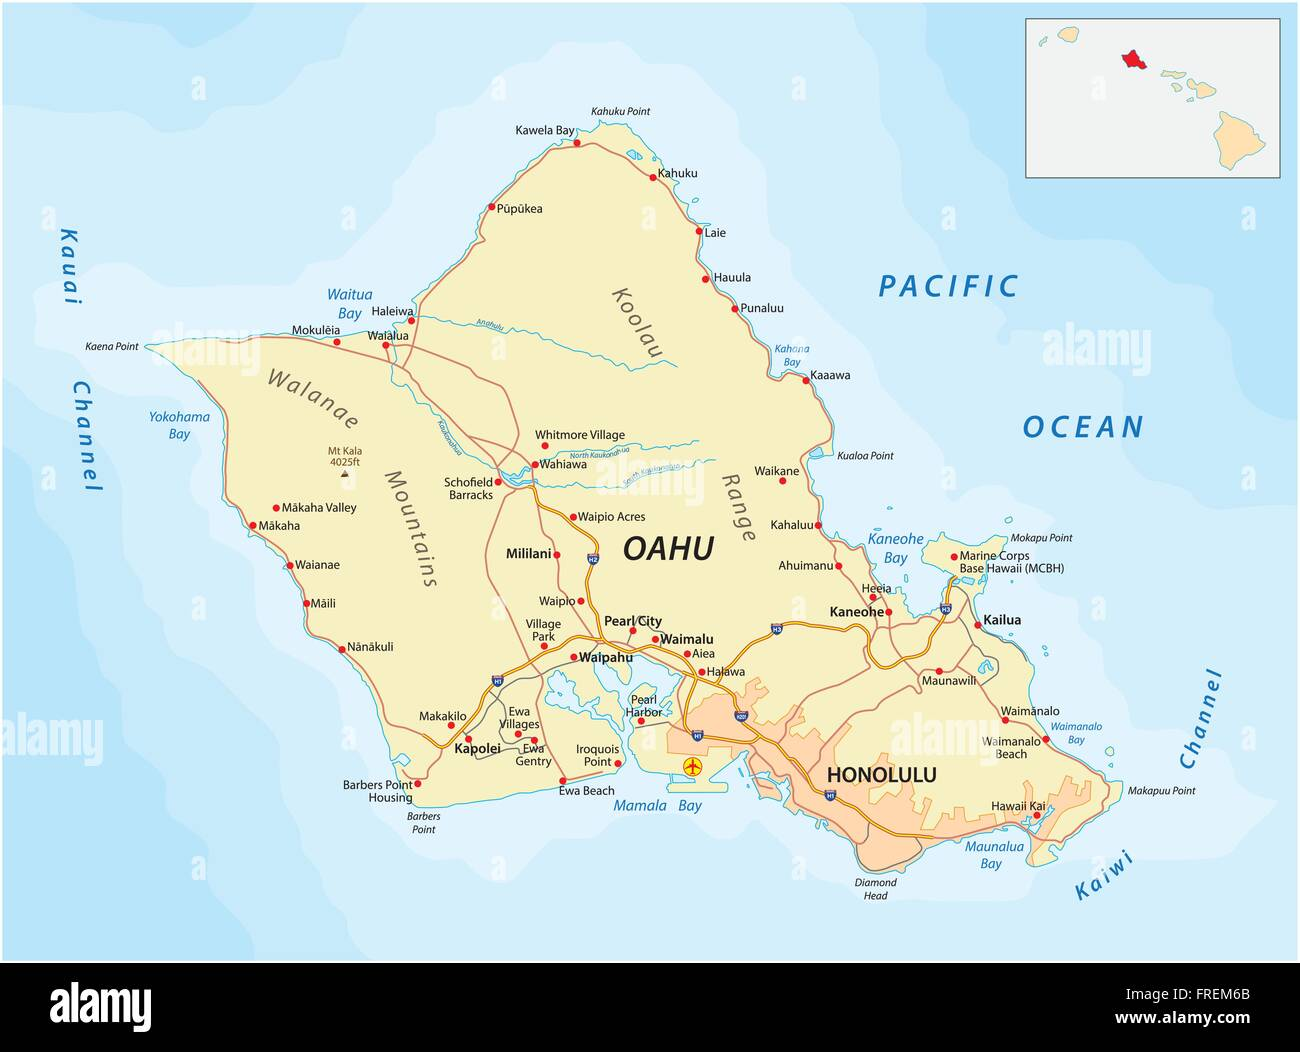 road map of oahu Oahu Map High Resolution Stock Photography And Images Alamy road map of oahu